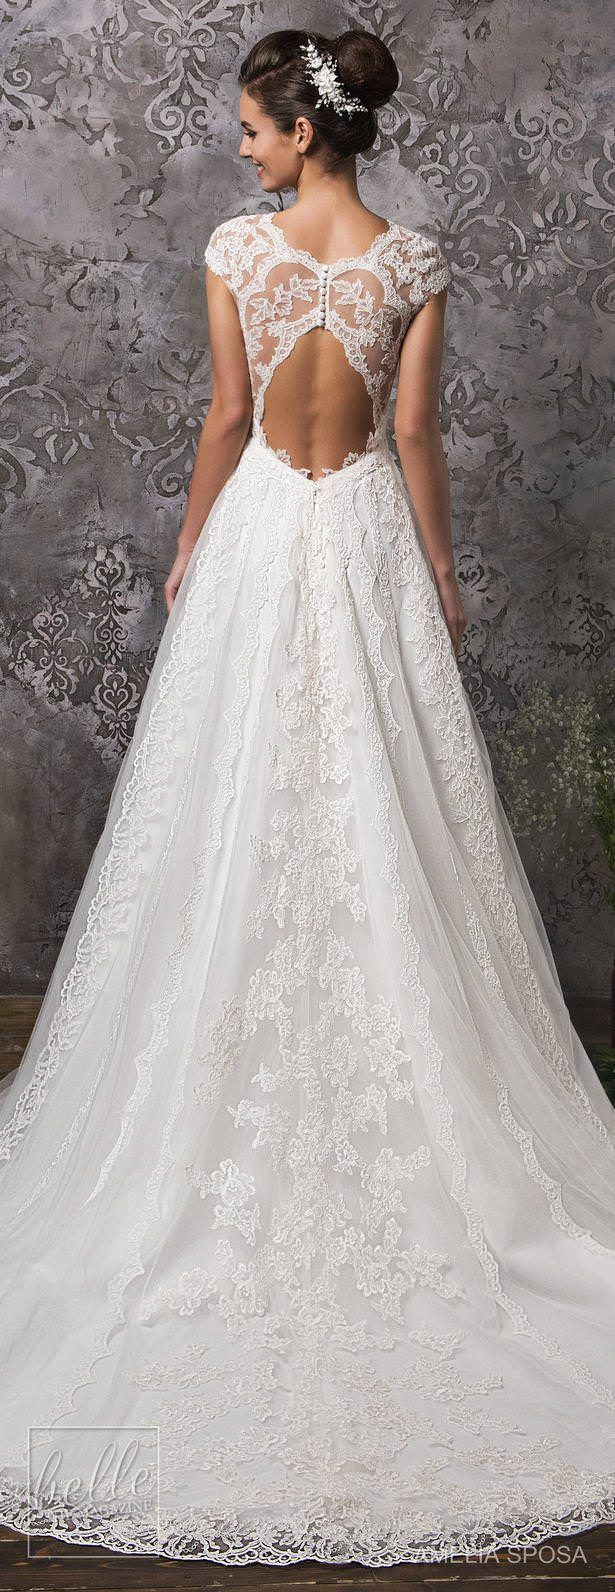 Dress for fall wedding  Amelia Sposa Wedding Dress Collection Fall   THE dress